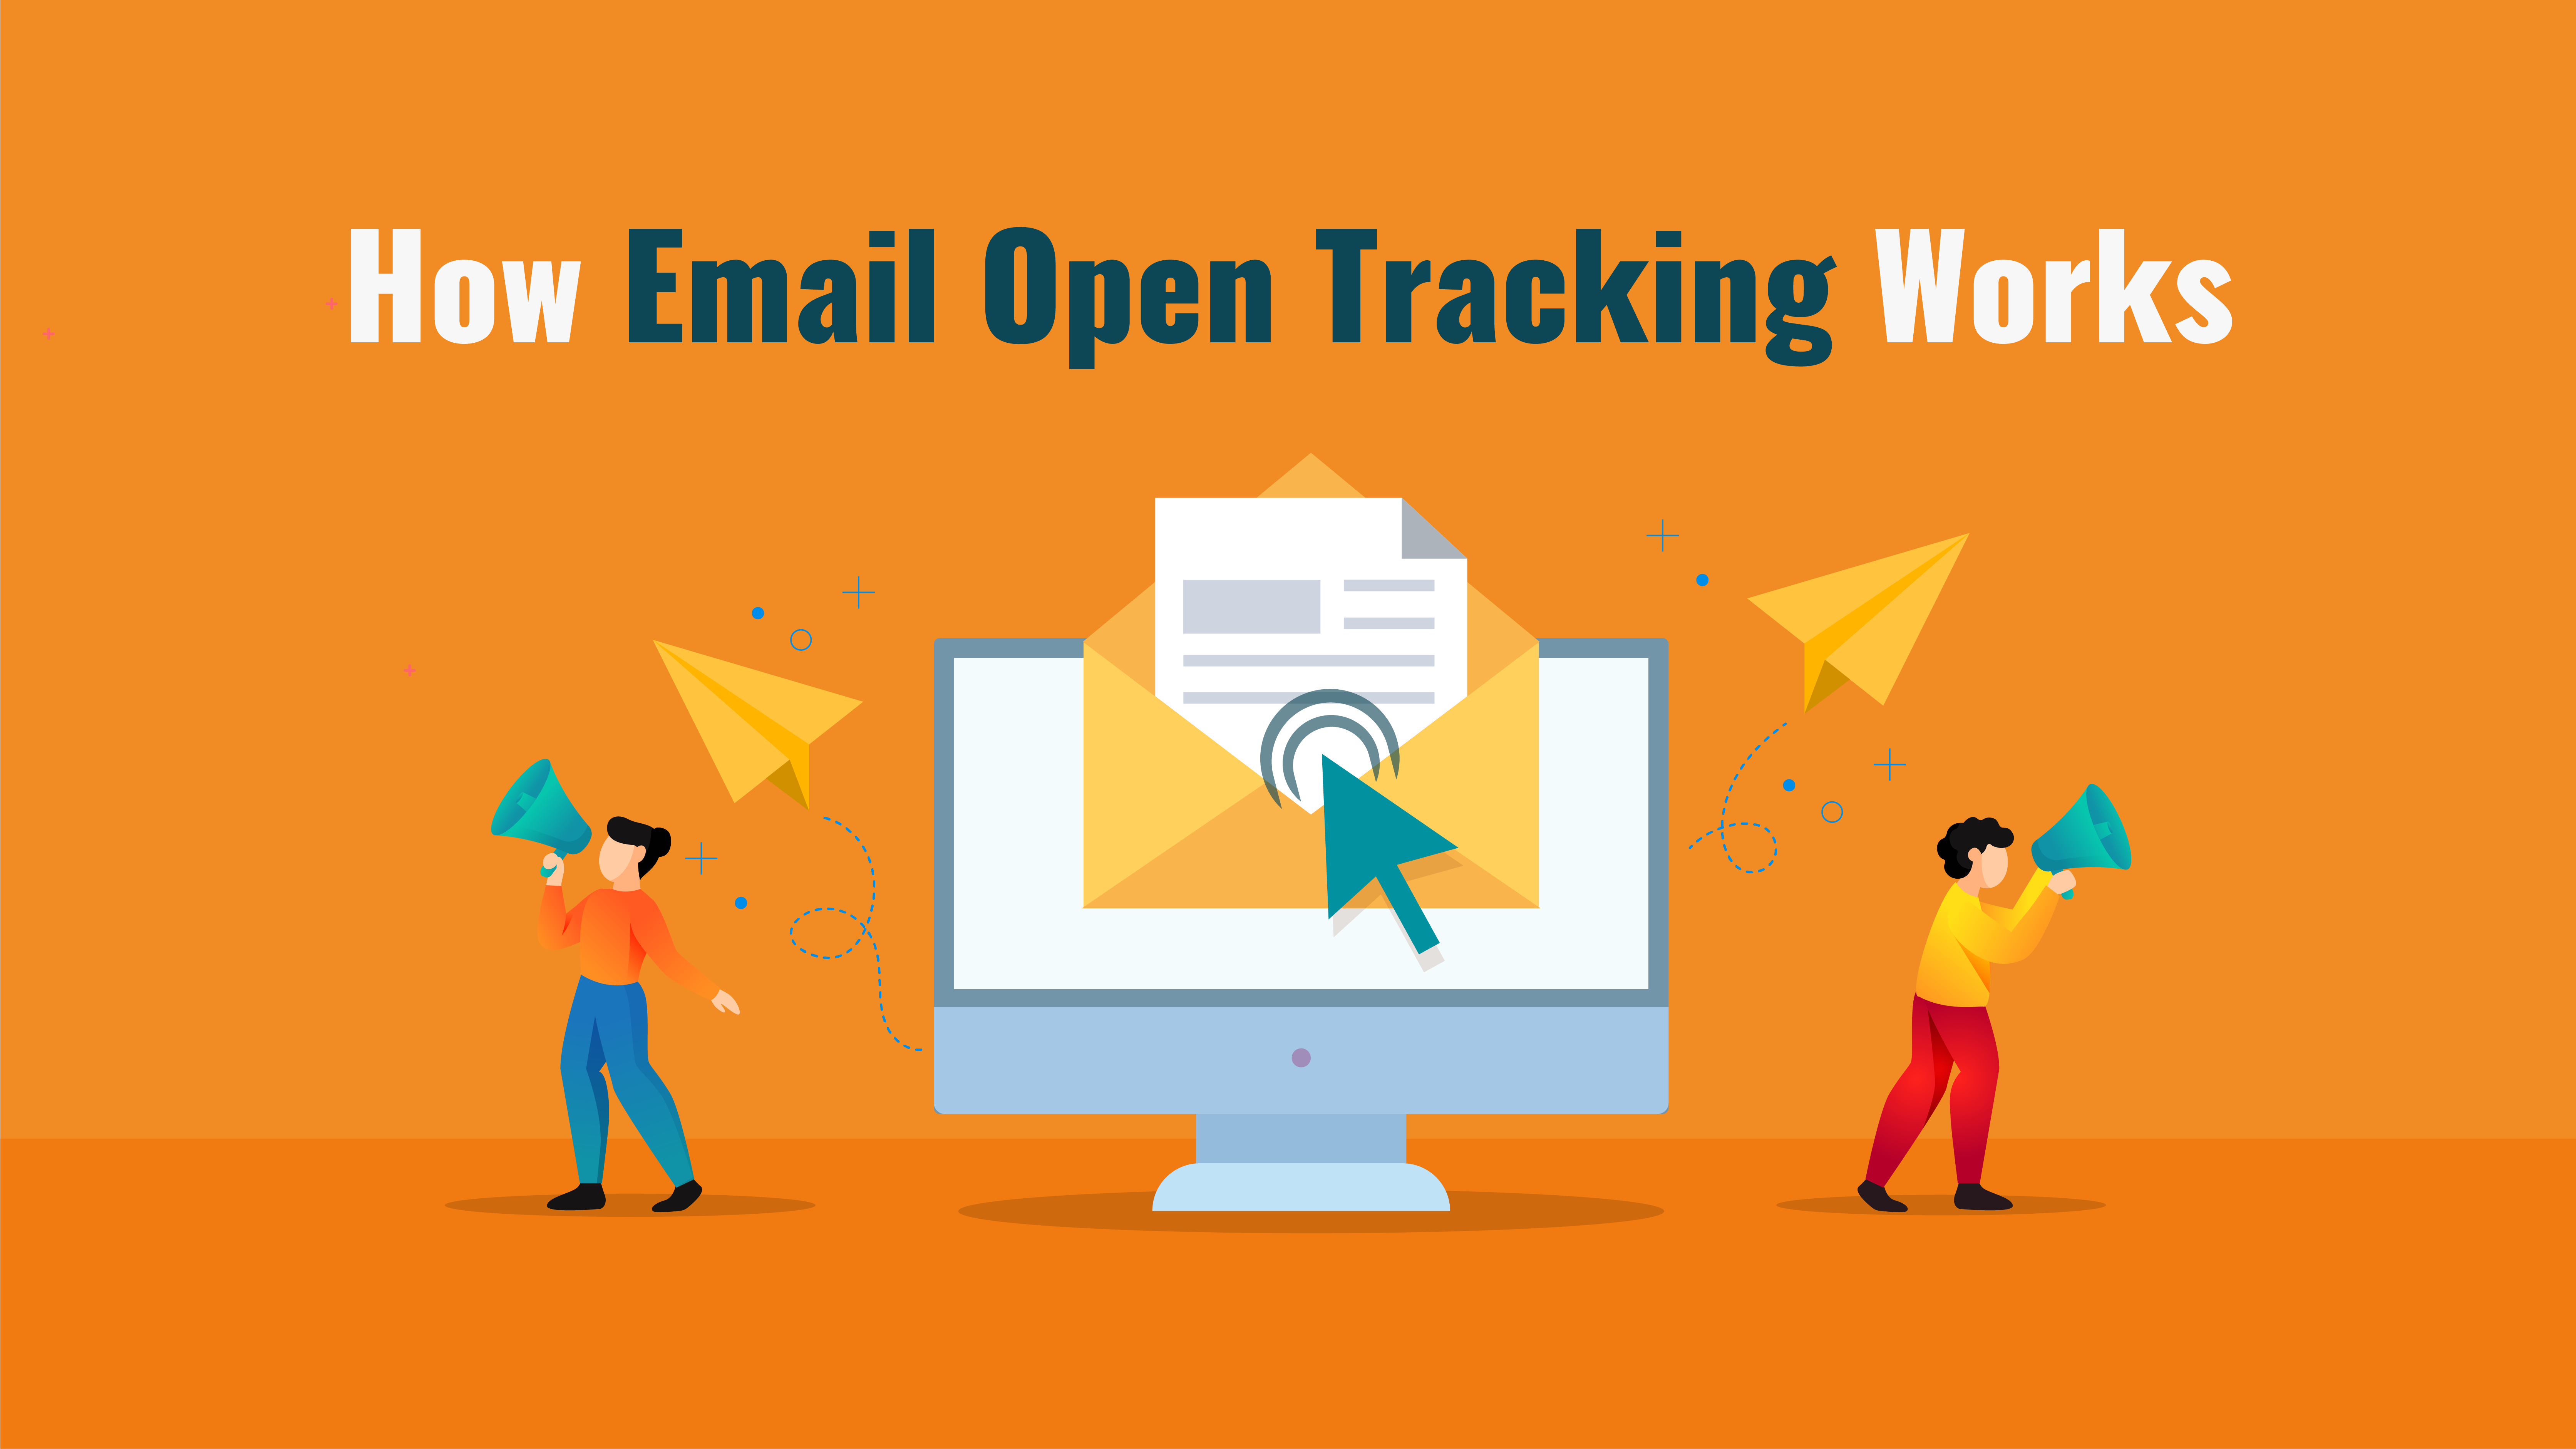 How email open tracking works